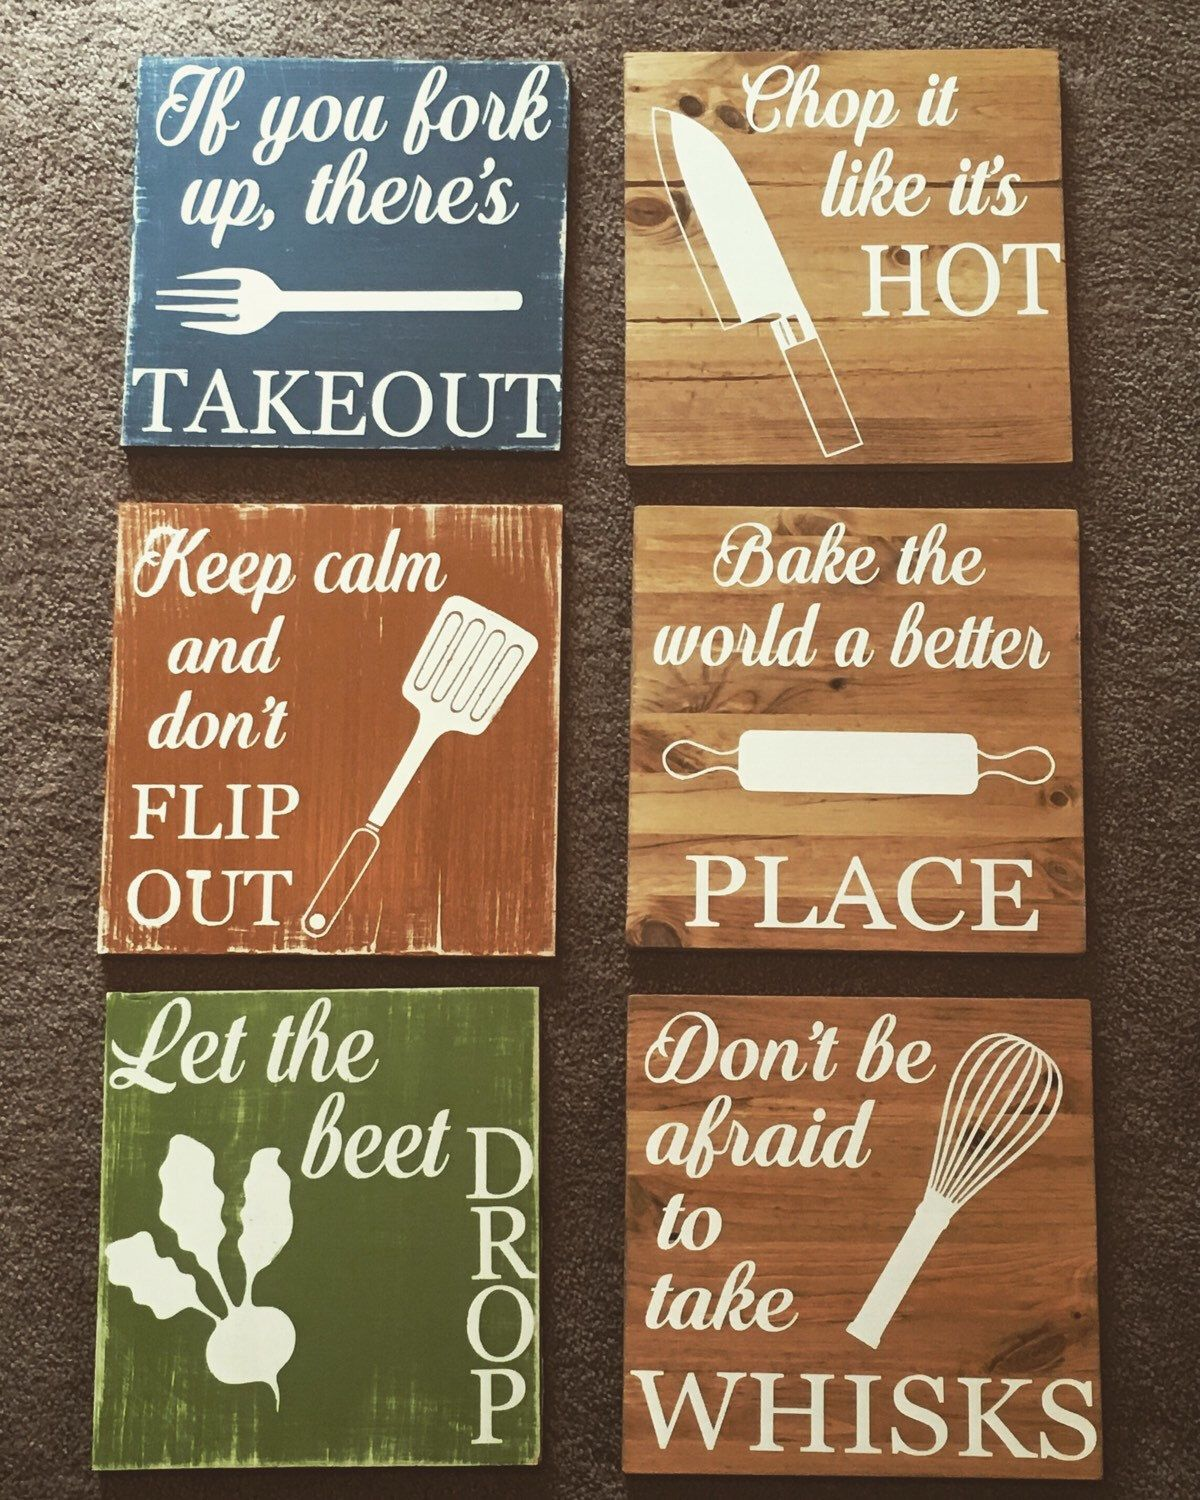 Kitchen Signs Sayings: Chop It Like It's Hot, Funny Kitchen Signs, Kitchen Decor